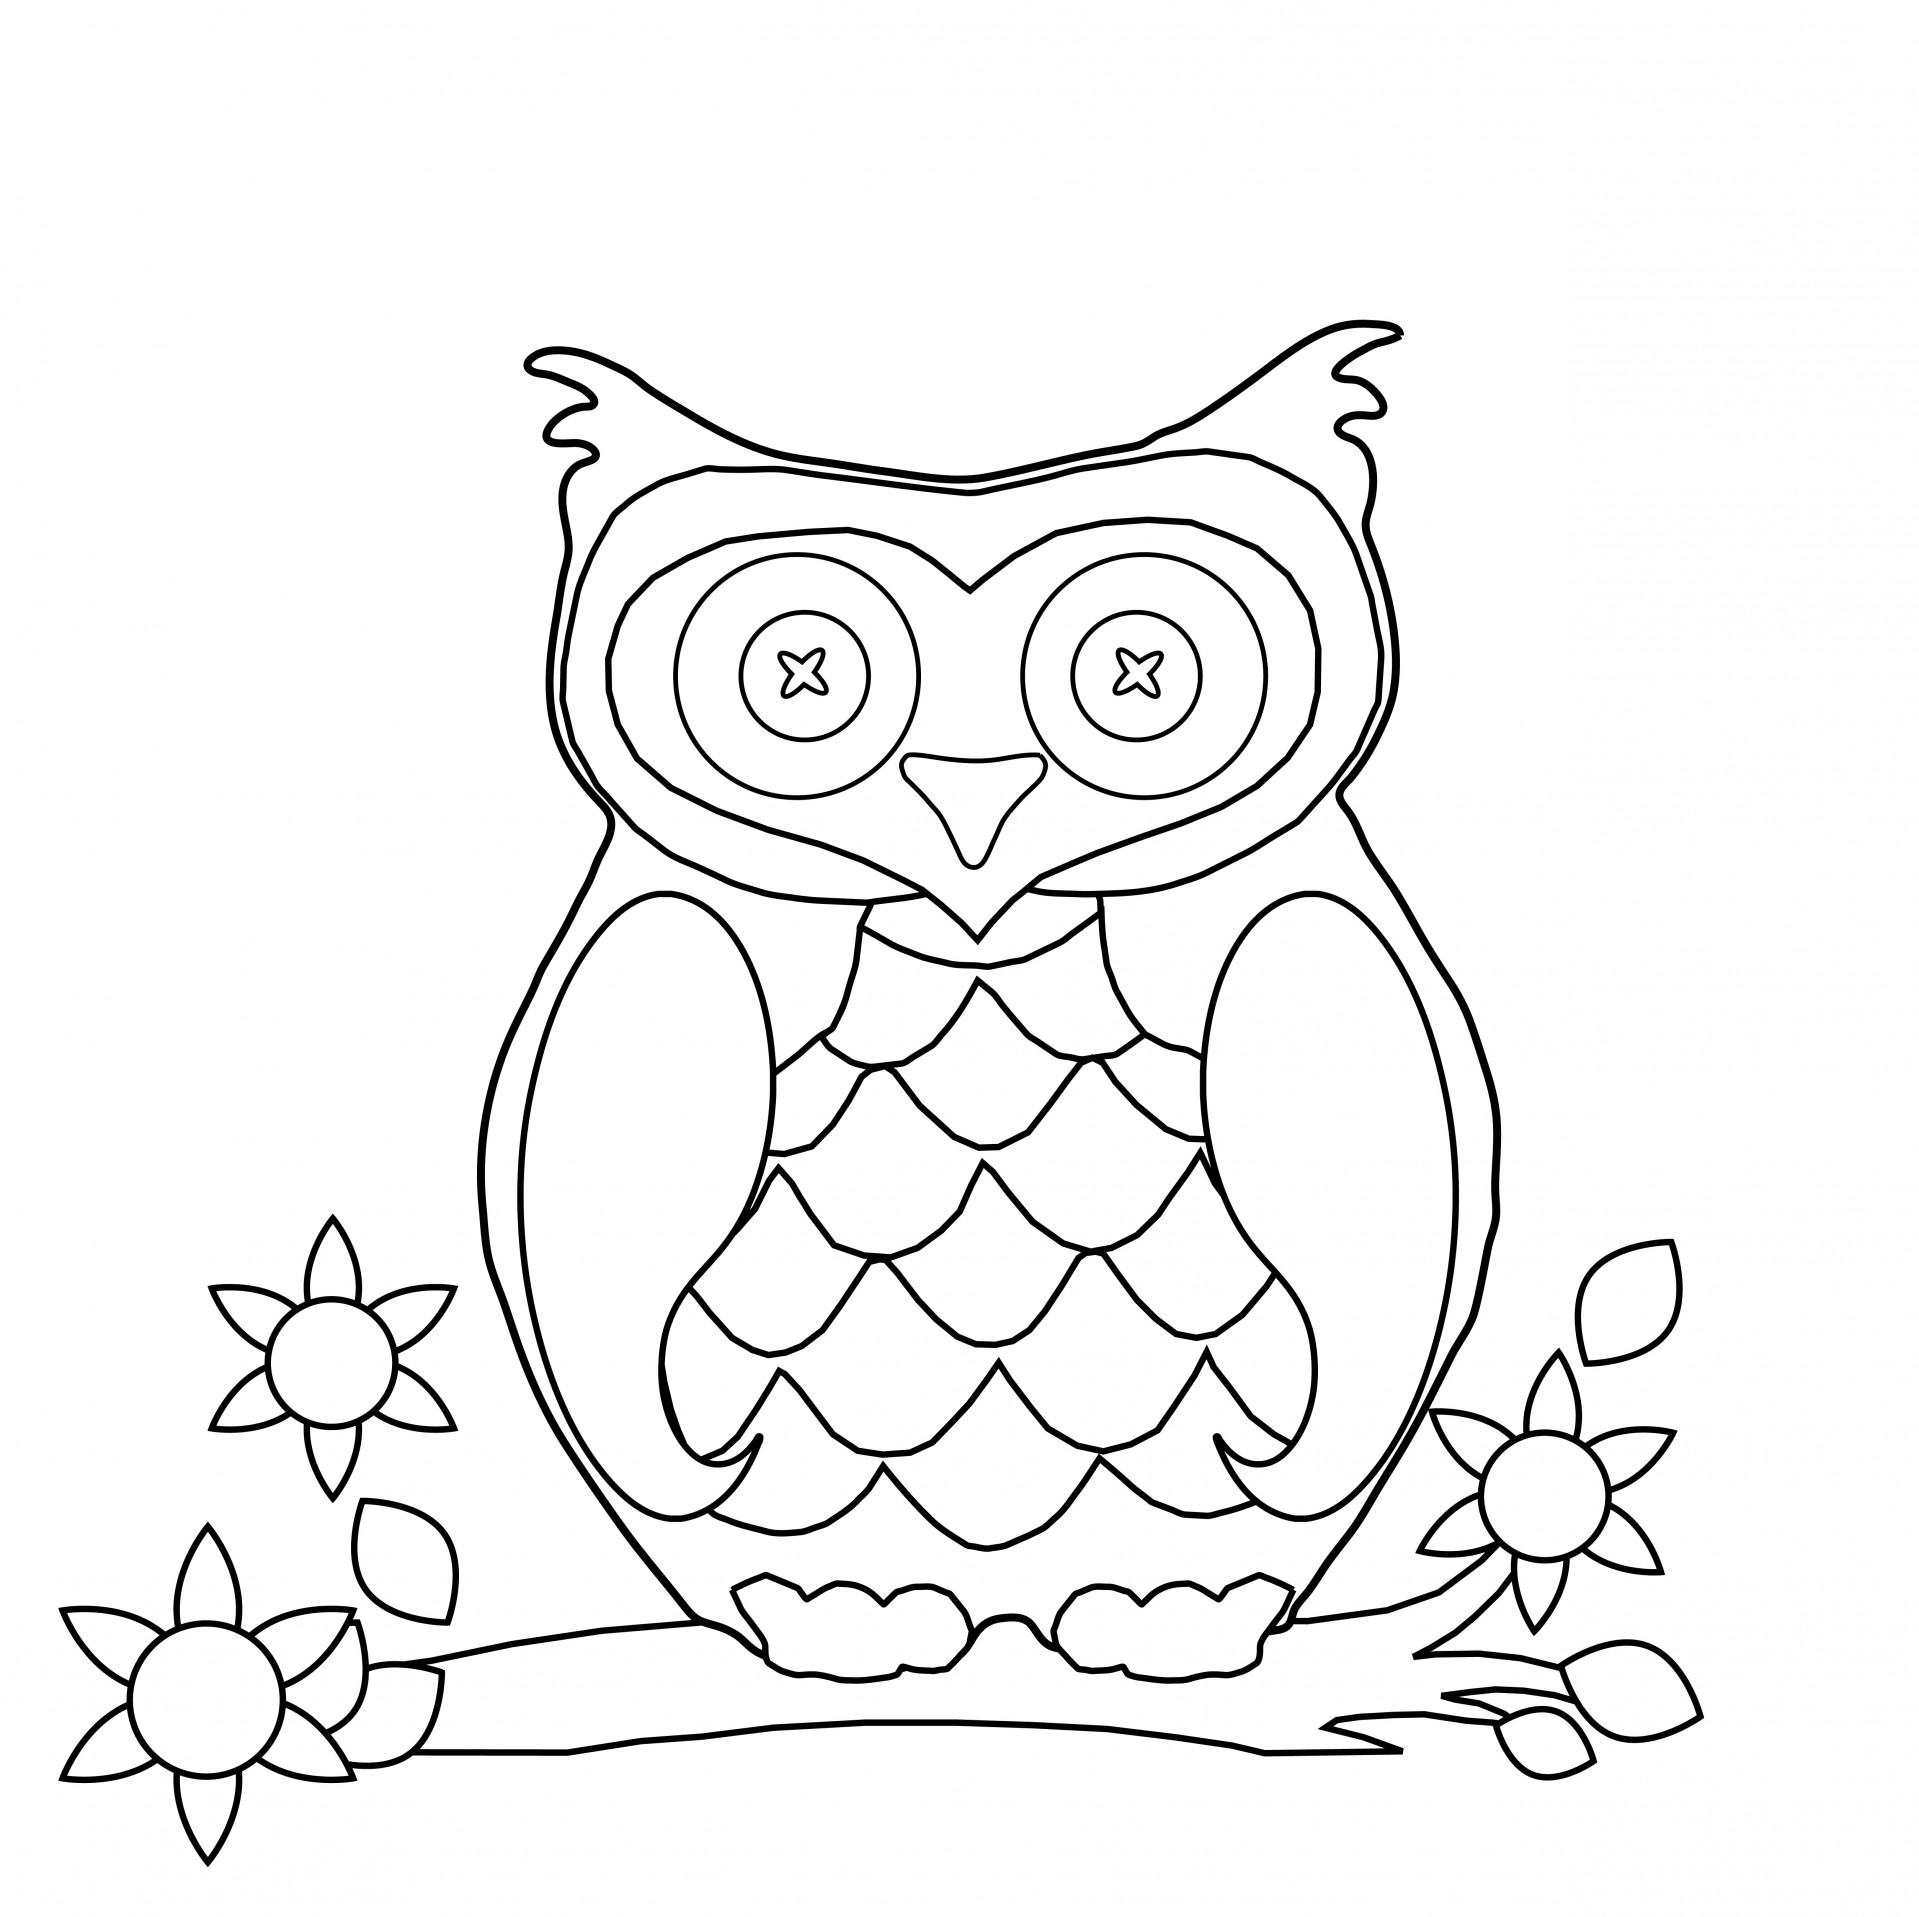 coloring templates for adults owl coloring pages for adults free detailed owl coloring templates adults for coloring